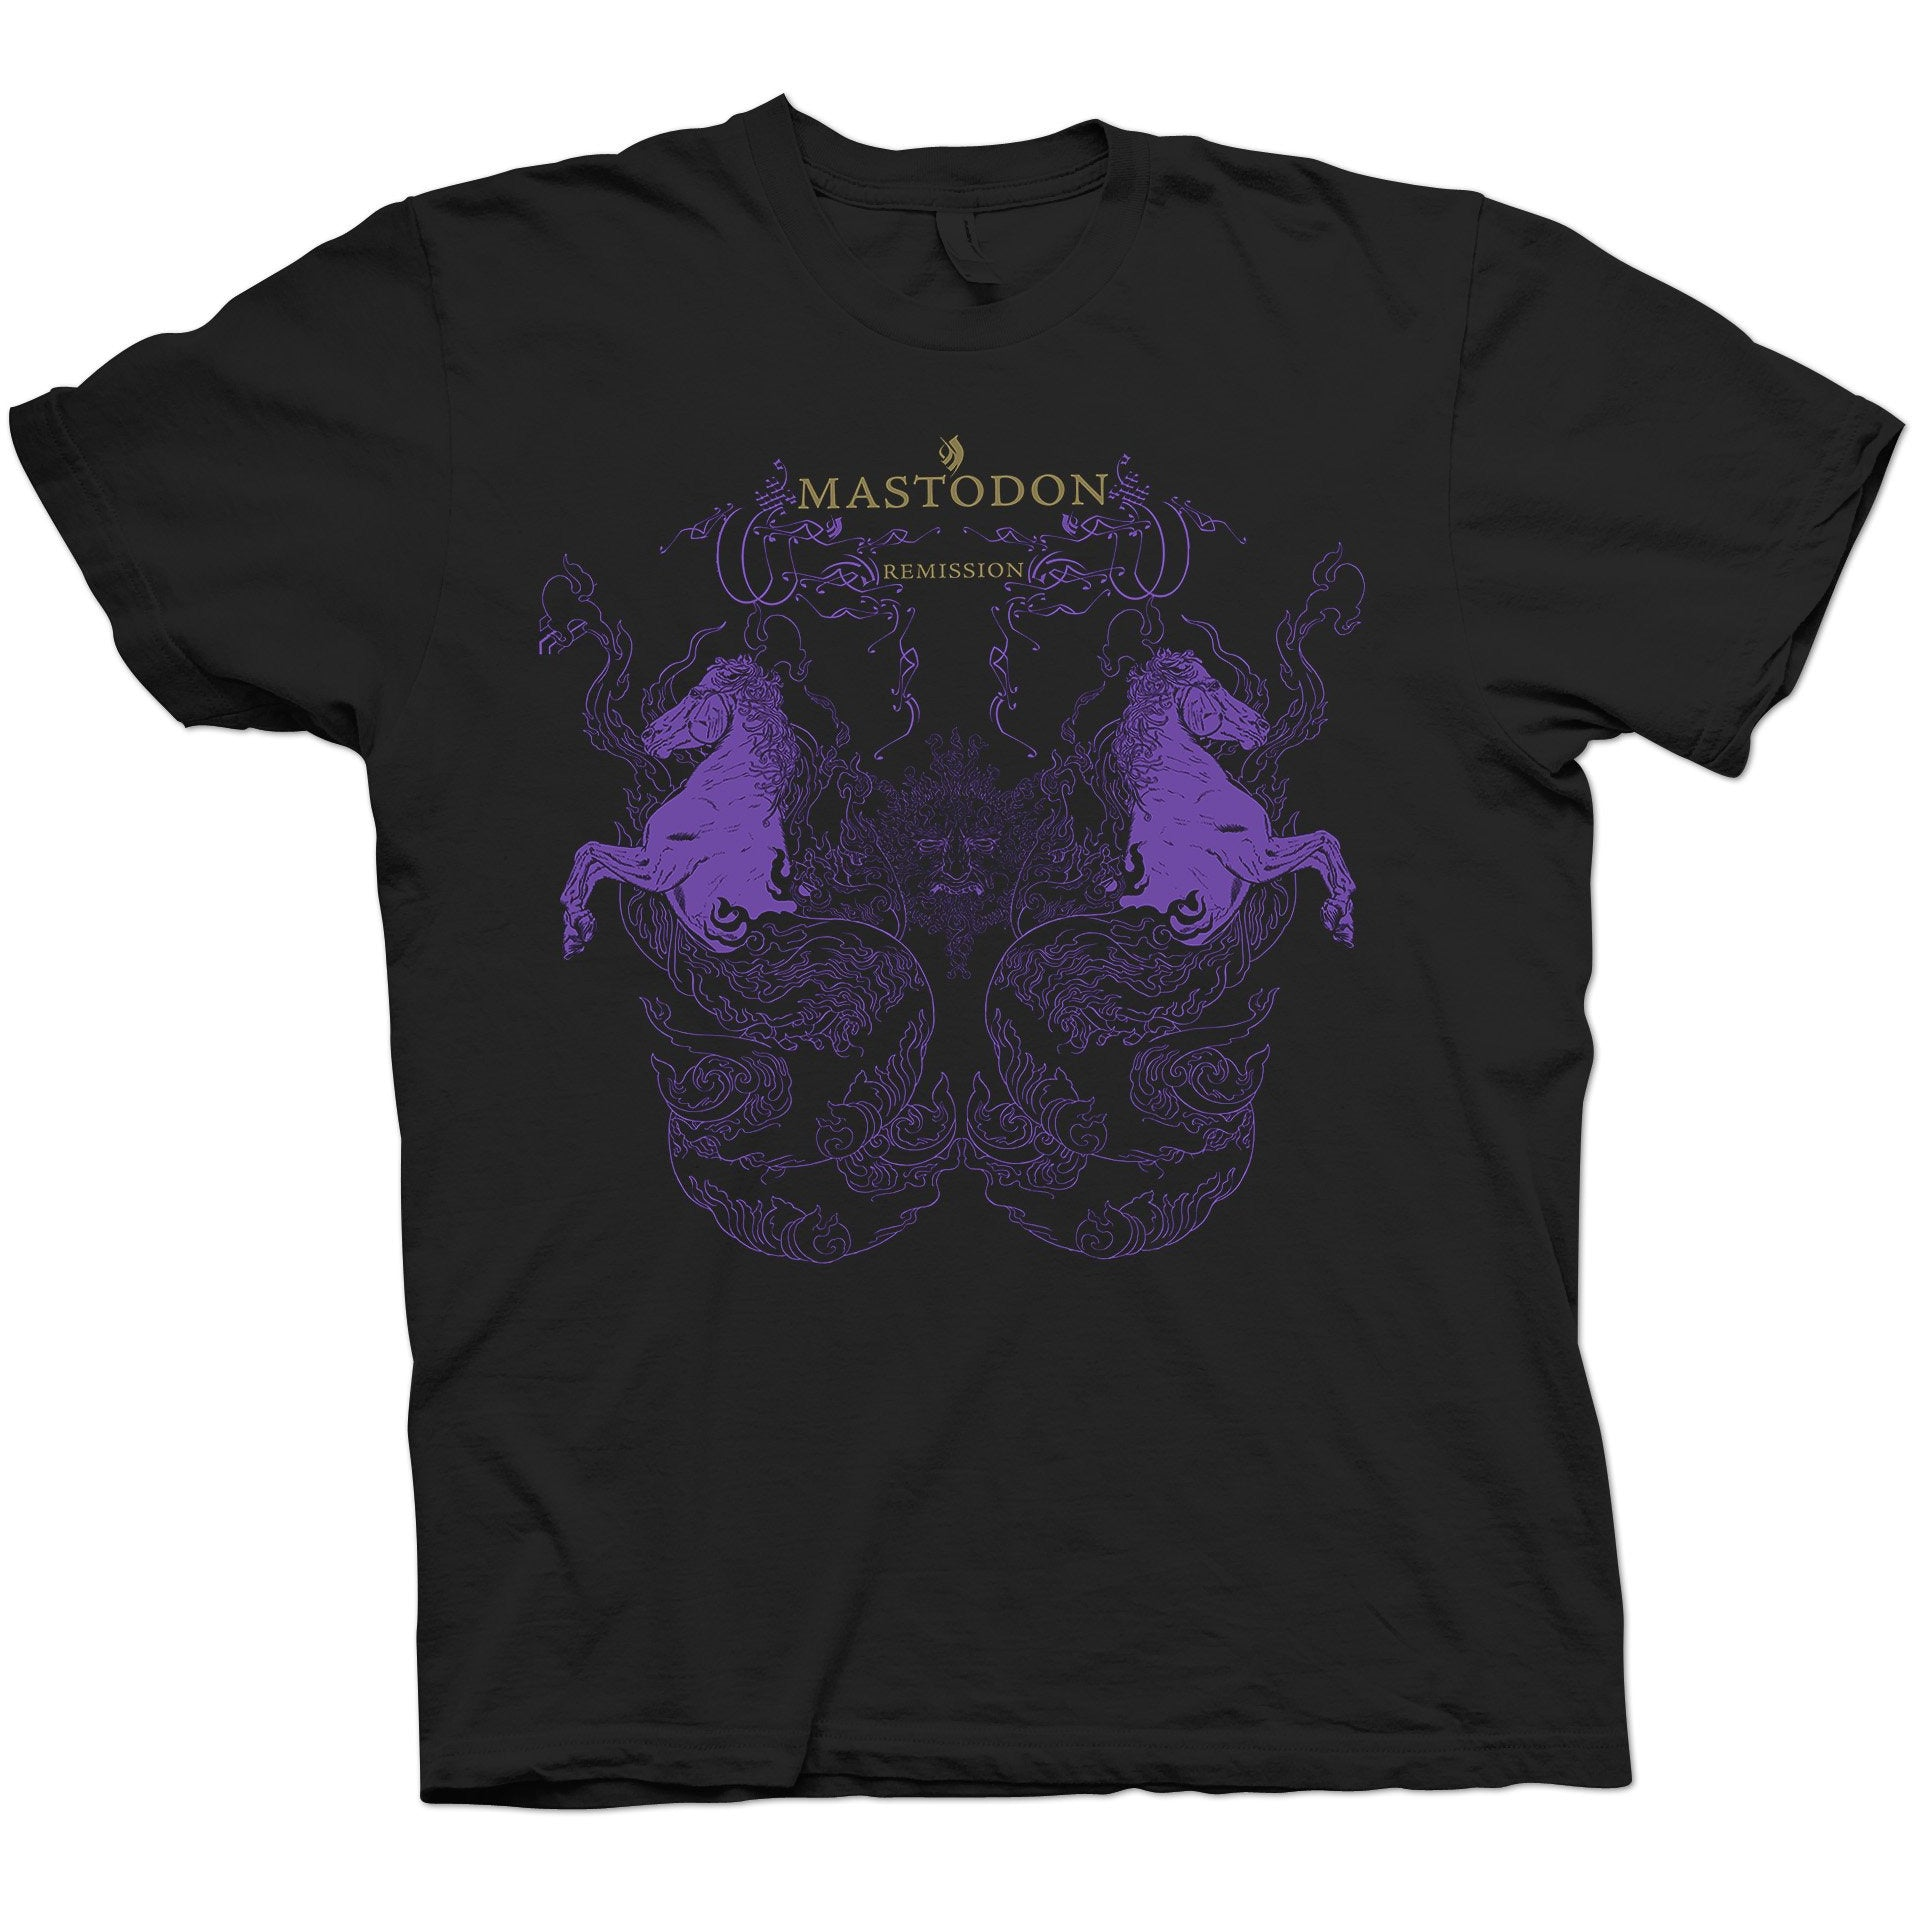 Mastodon - Workhorse T-Shirt